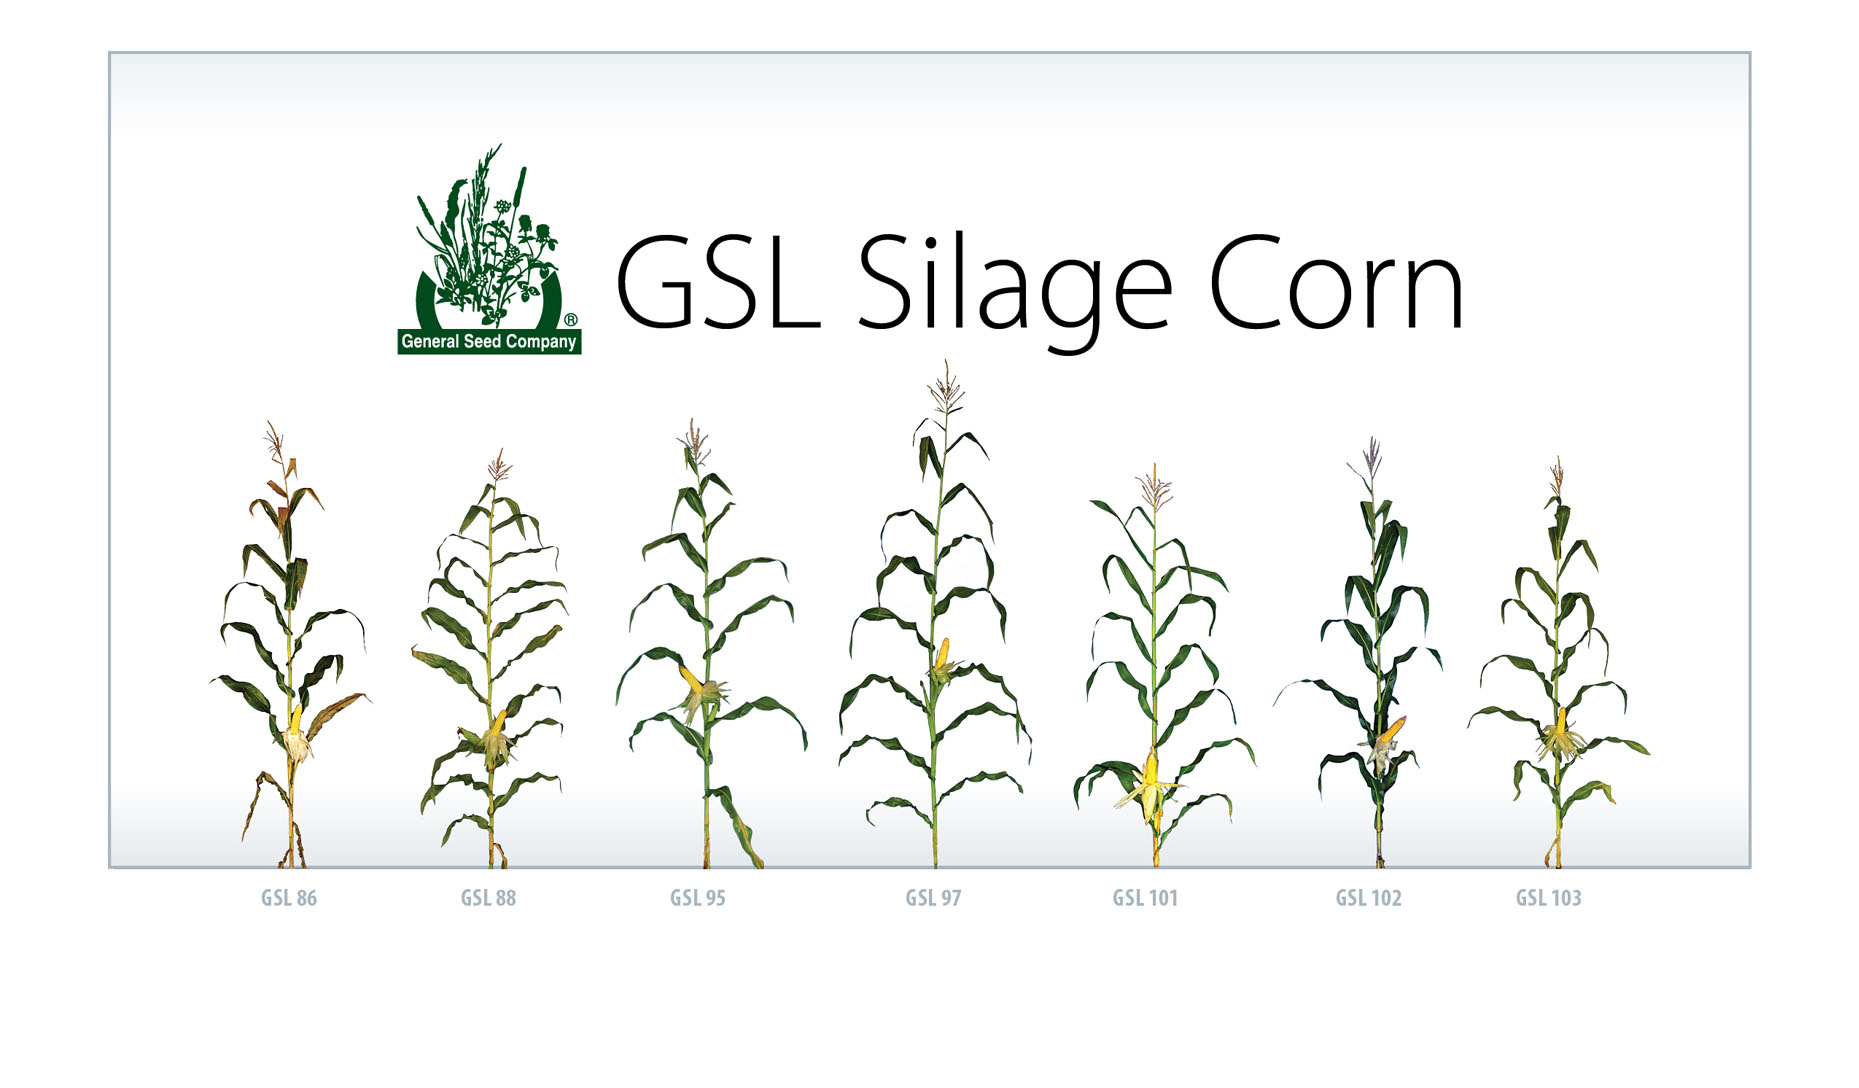 GSL Silage Corn general seed company